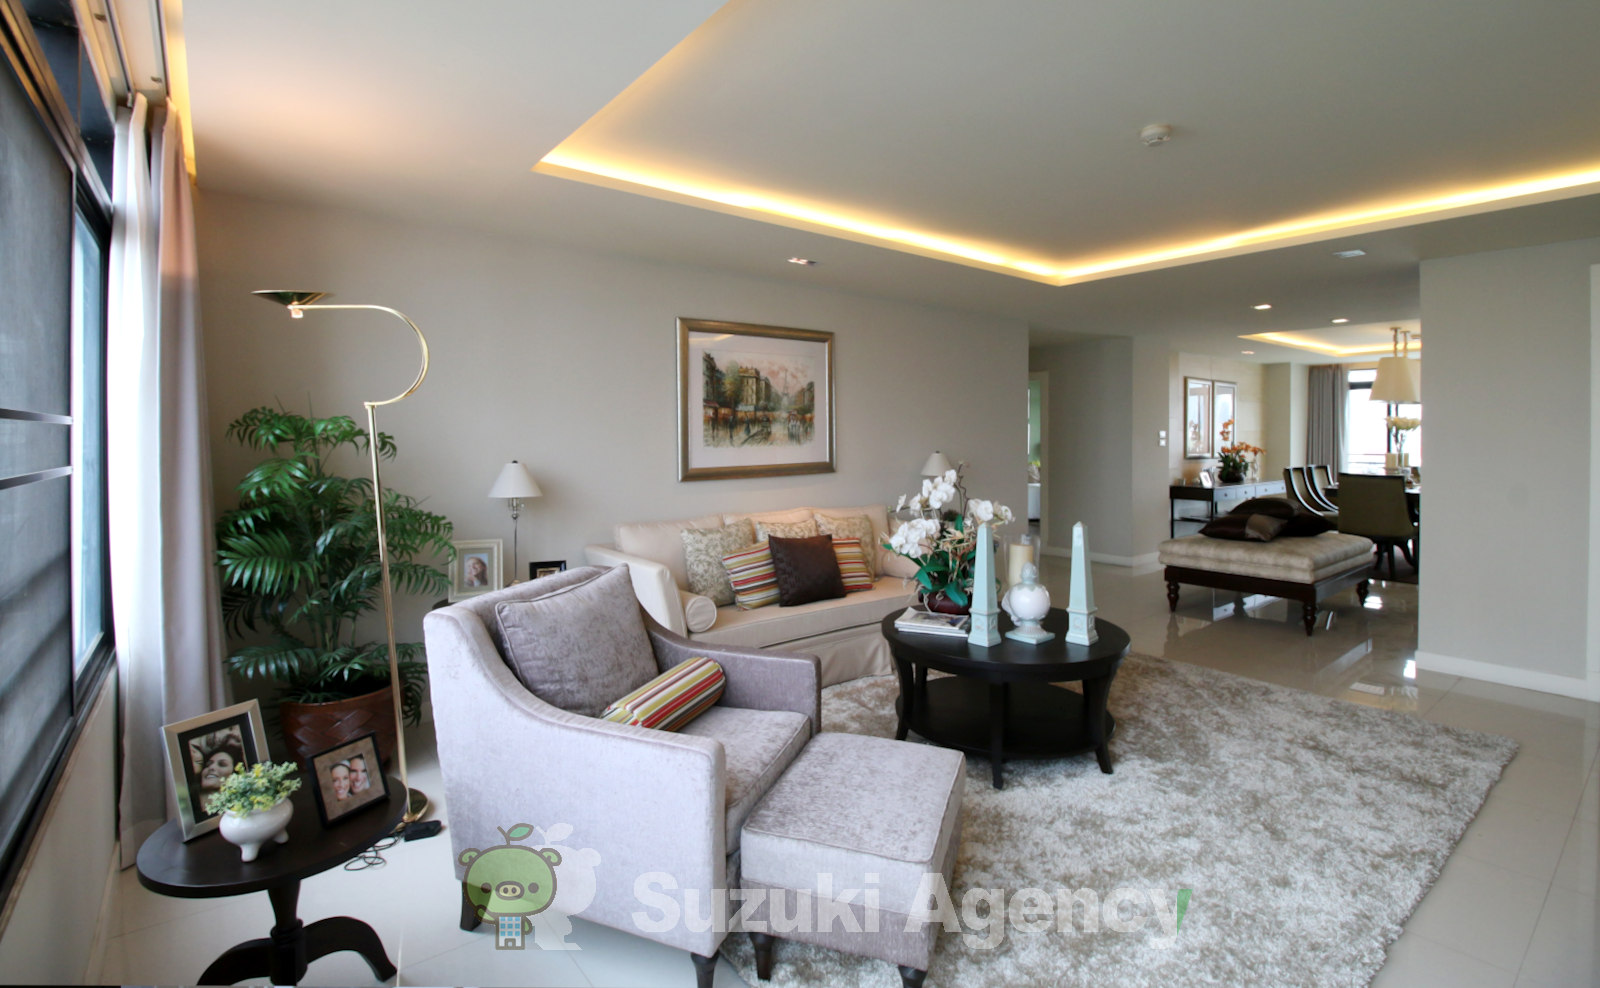 Romsai Residence:3Bed Room Photos No.3